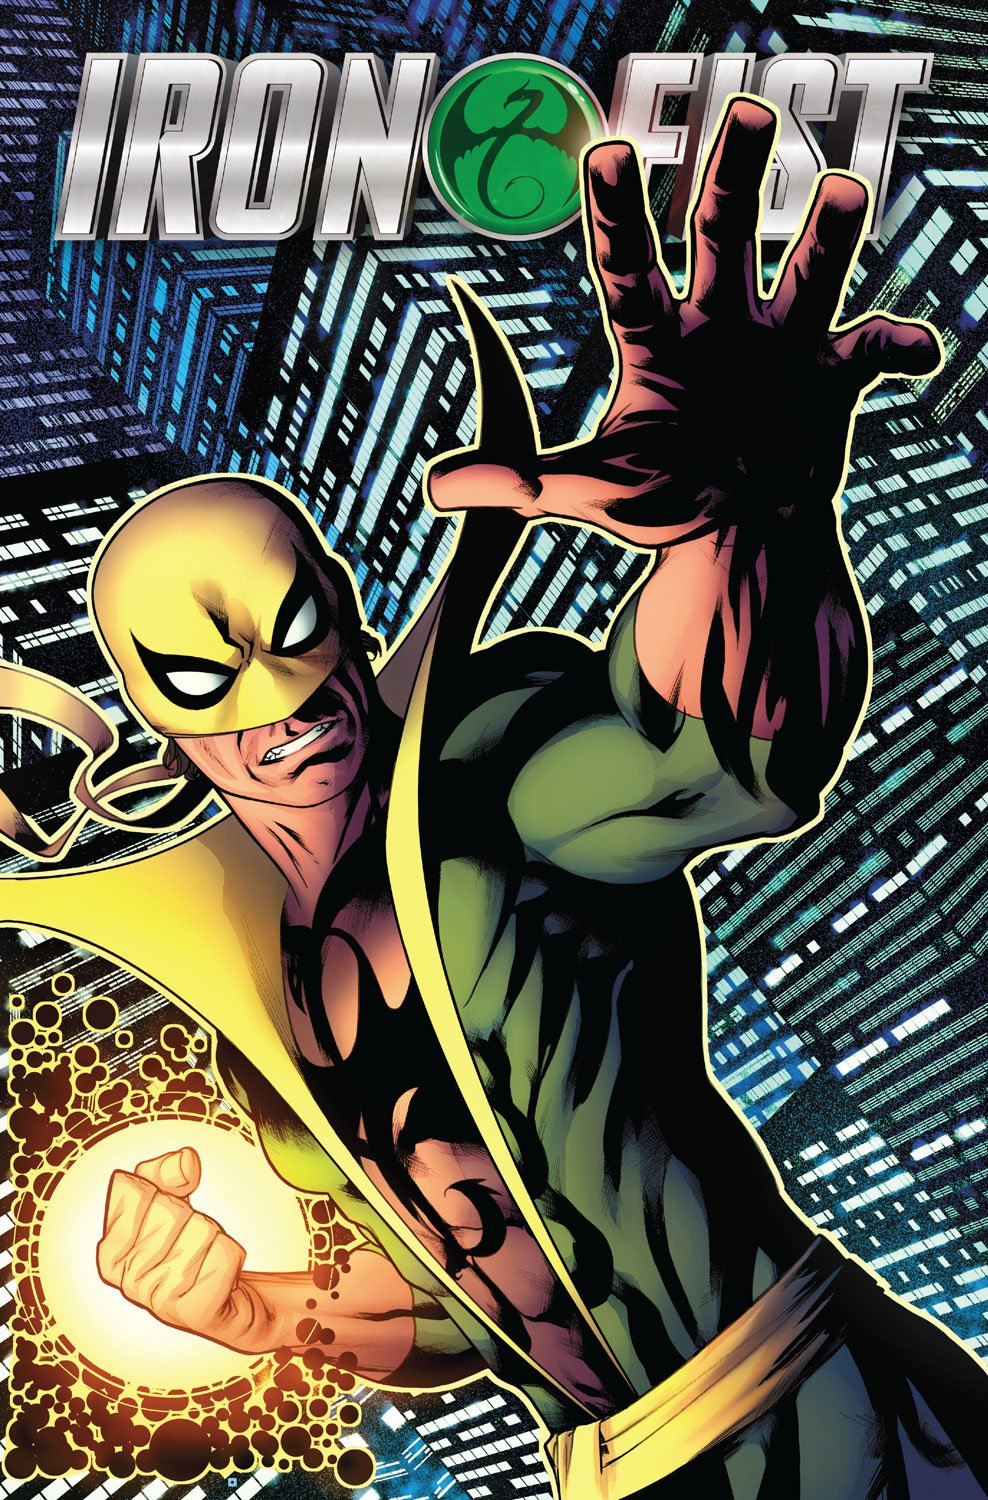 Iron Fist #1 Retailer Exclusive Variant Covers Revealed